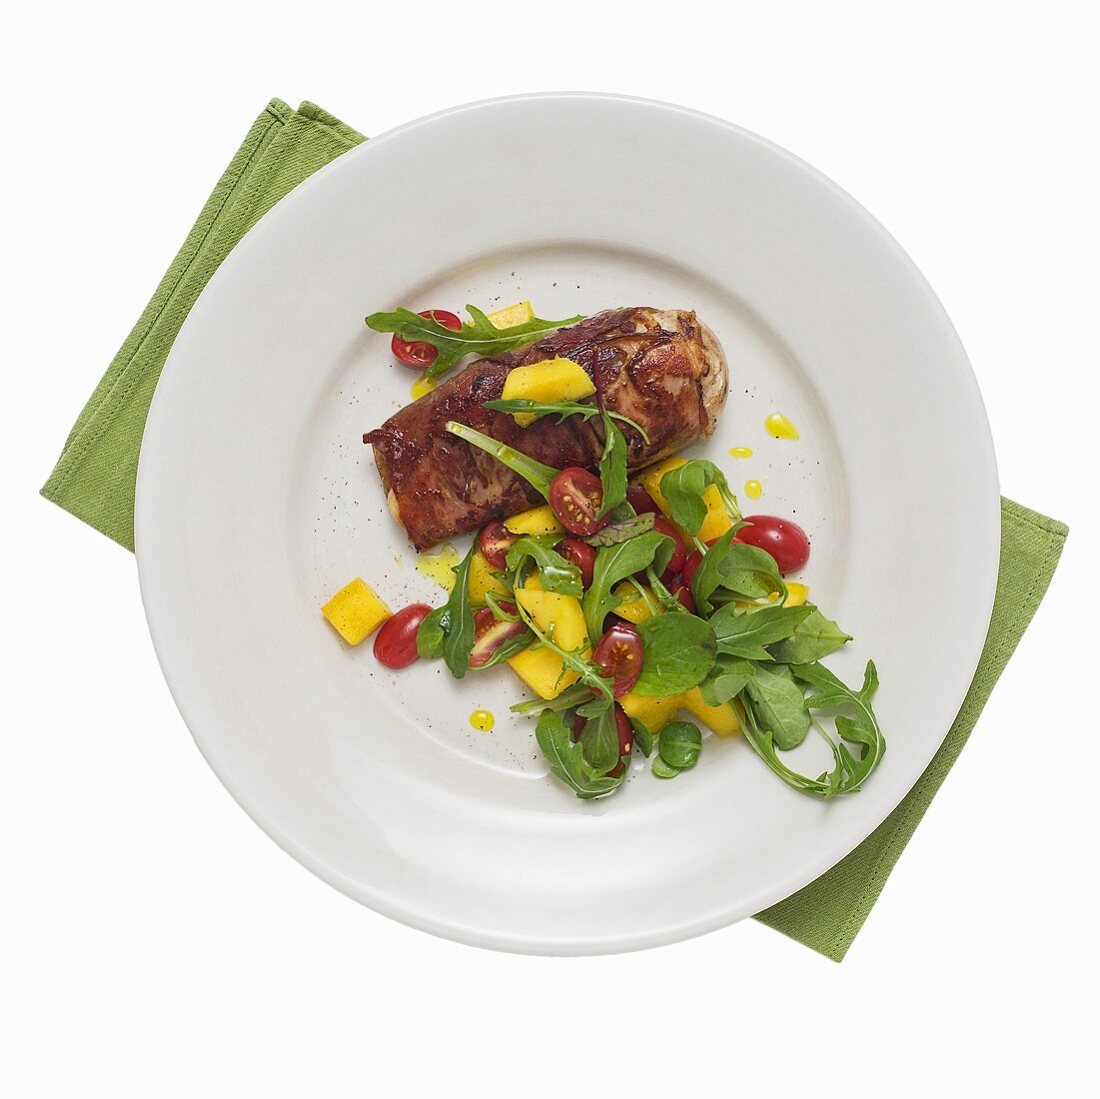 Bacon-wrapped chicken breast with tomato and mango salad